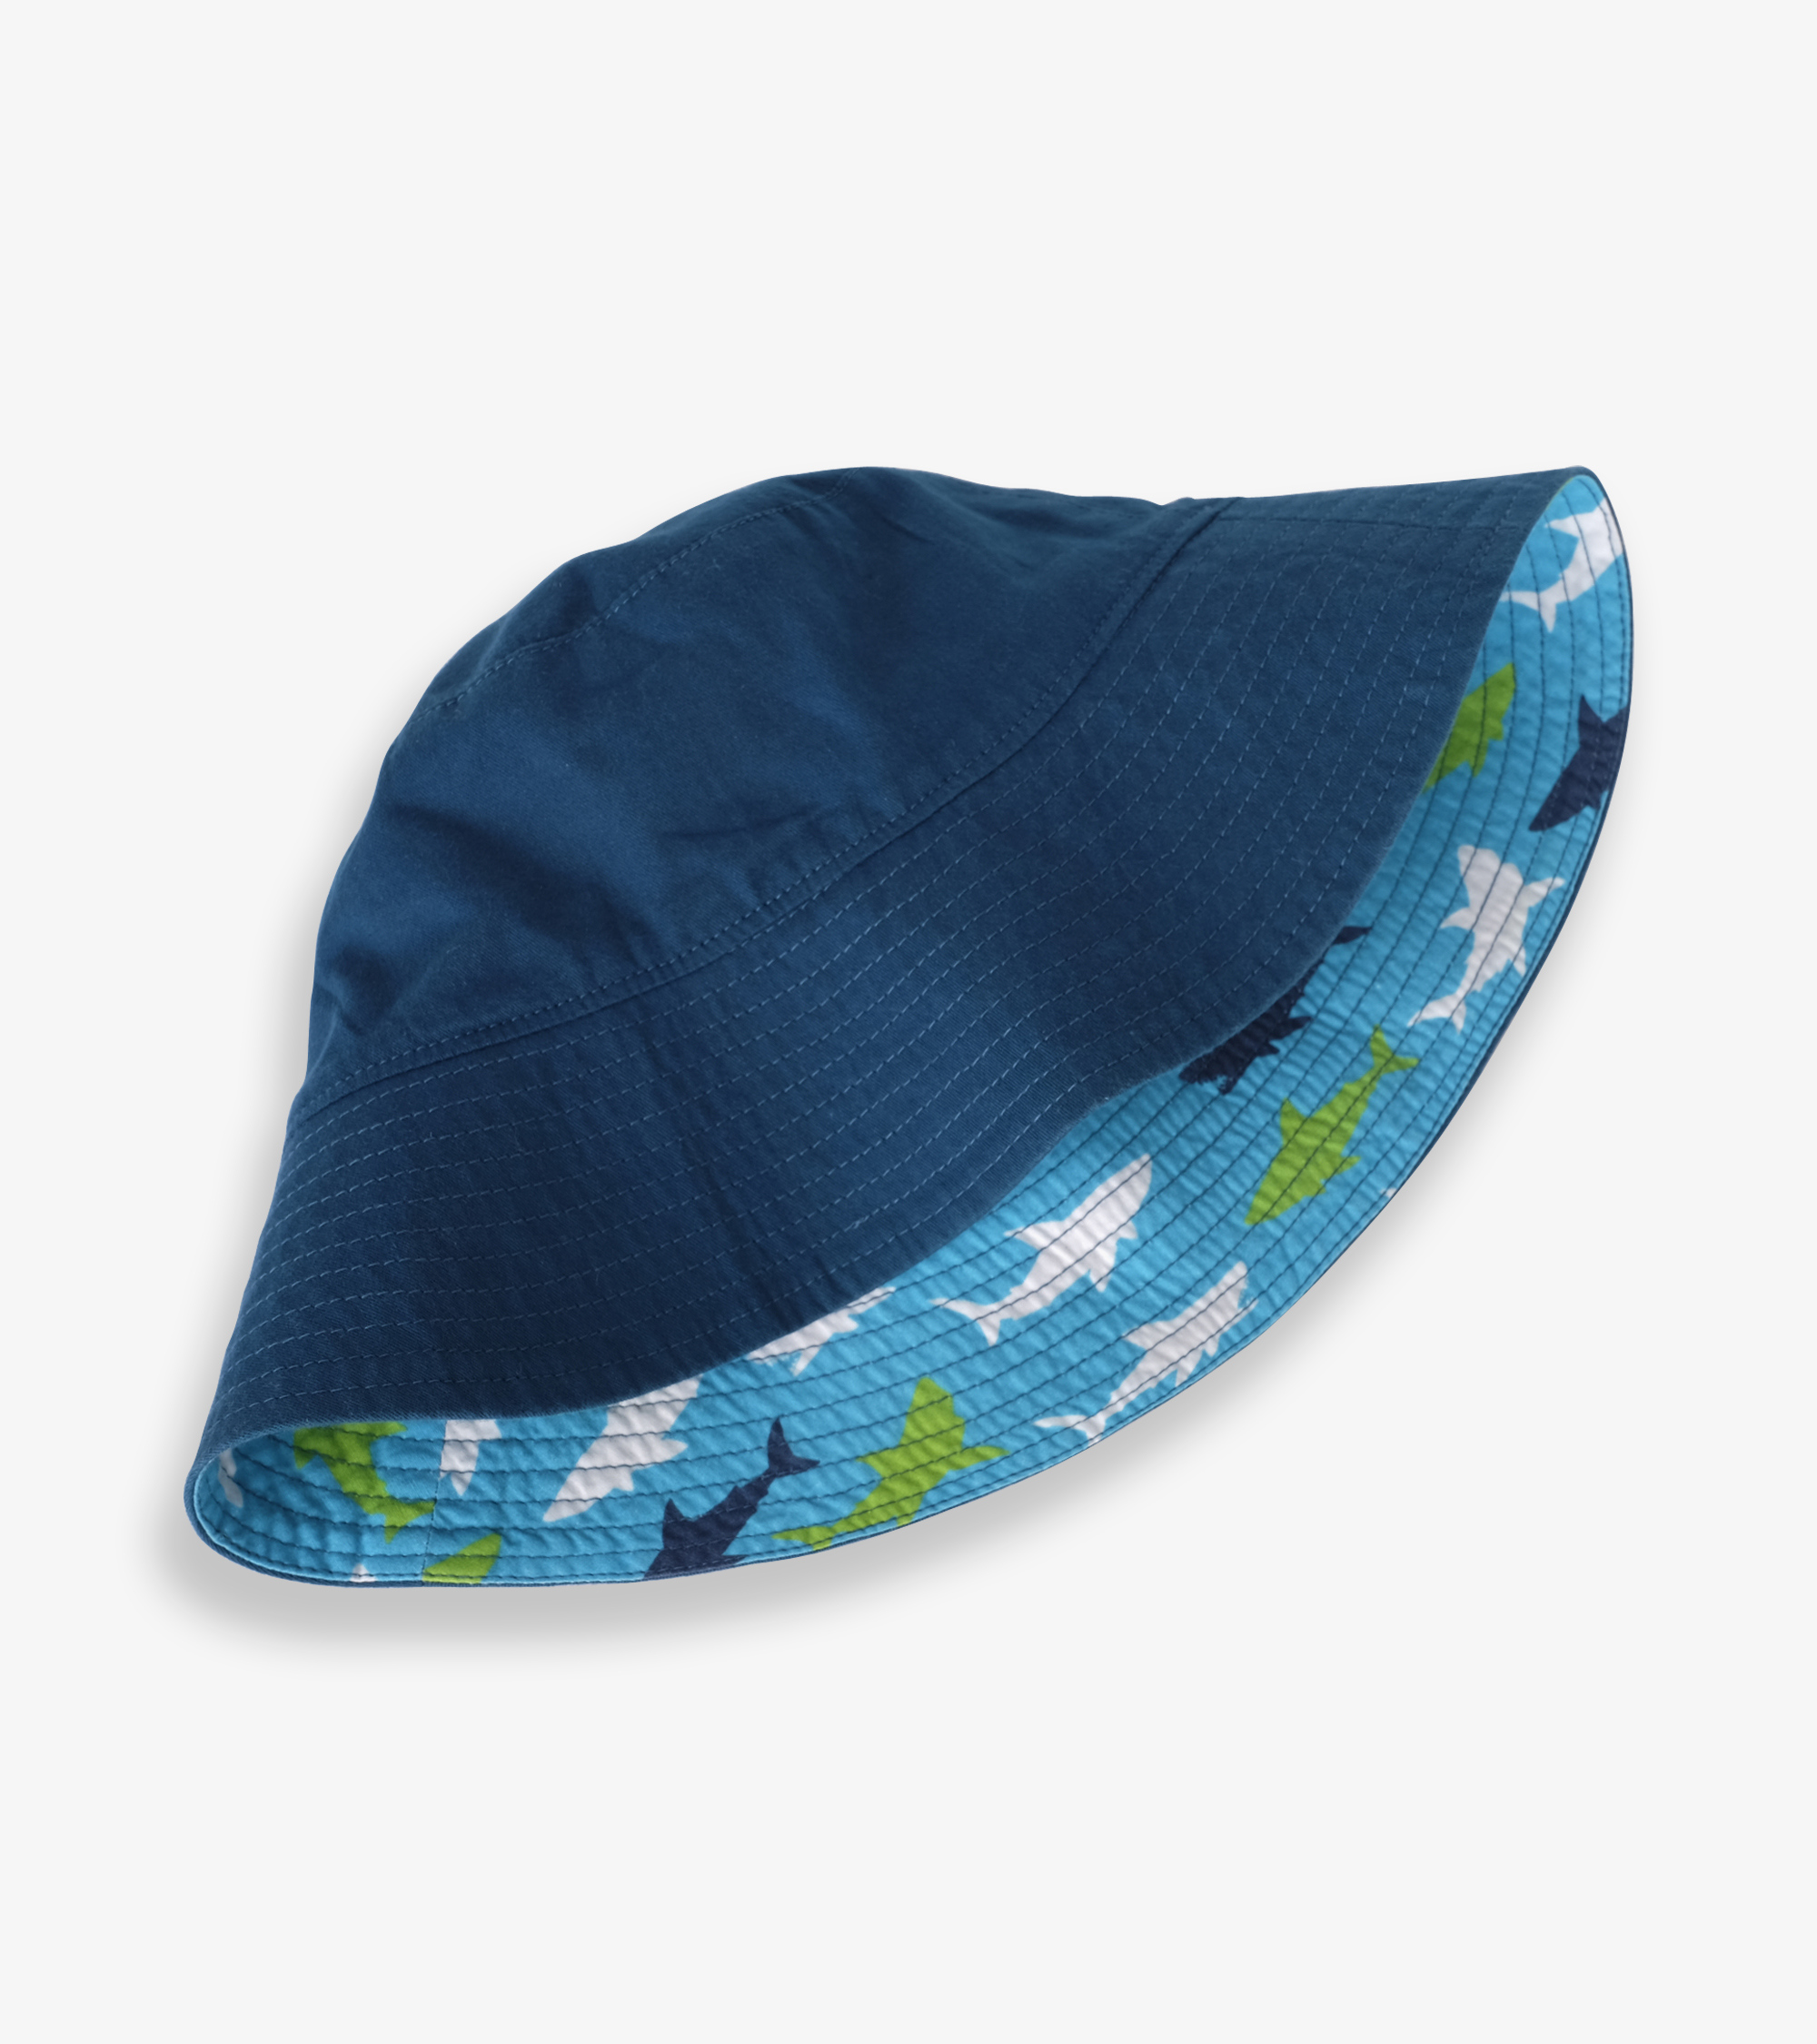 Hatley Great White Sharks Reversible Sun Hat